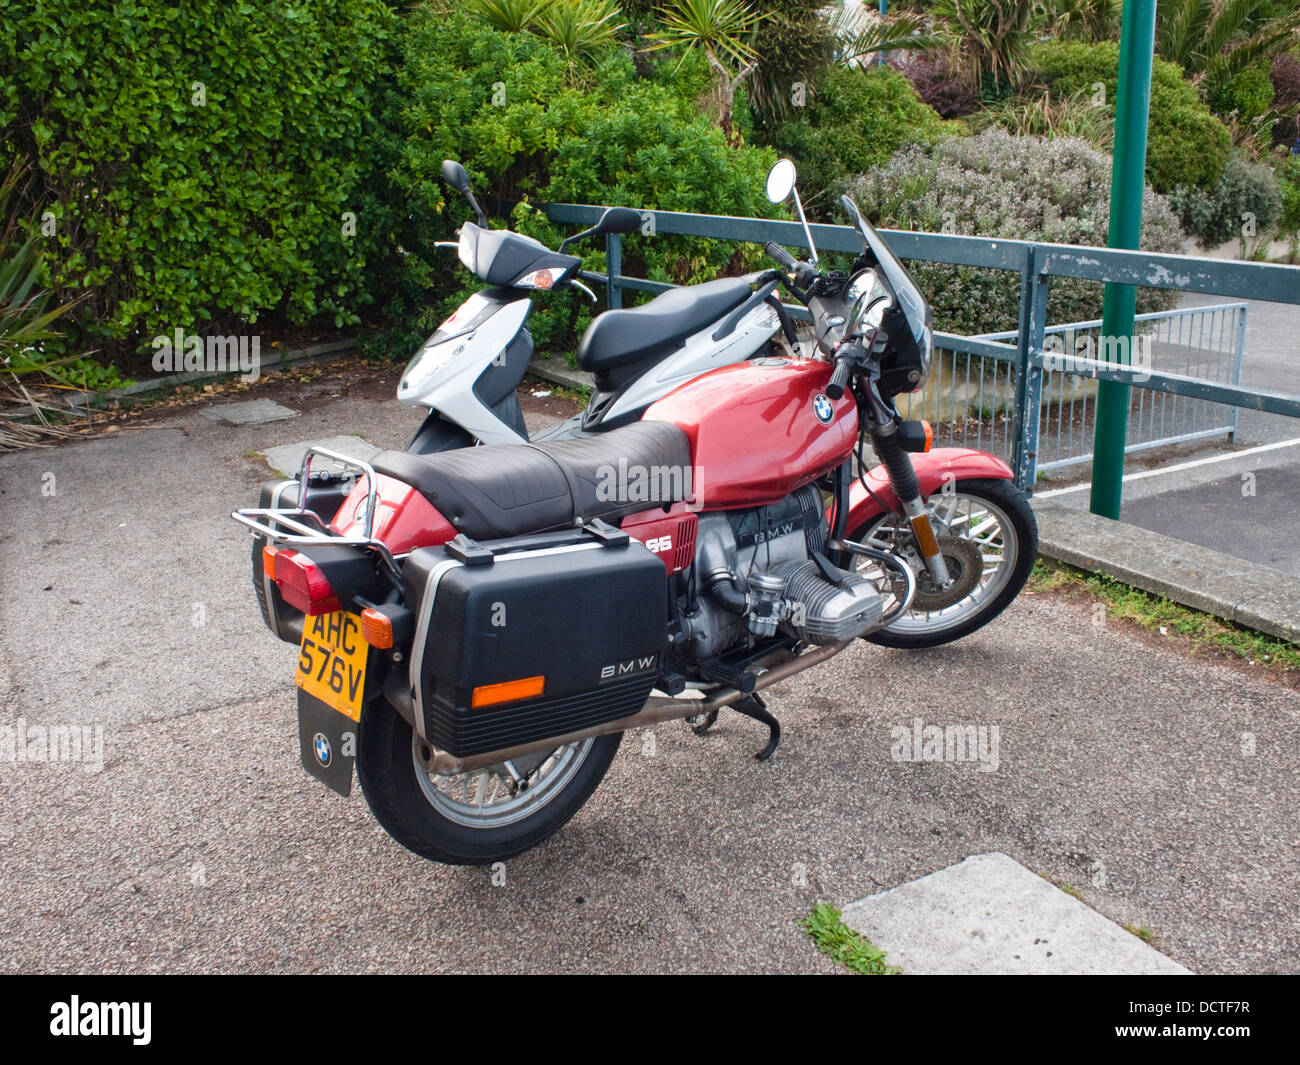 Bmw Motorbike Stock Photos & Bmw Motorbike Stock Images - Page 3 - Alamy